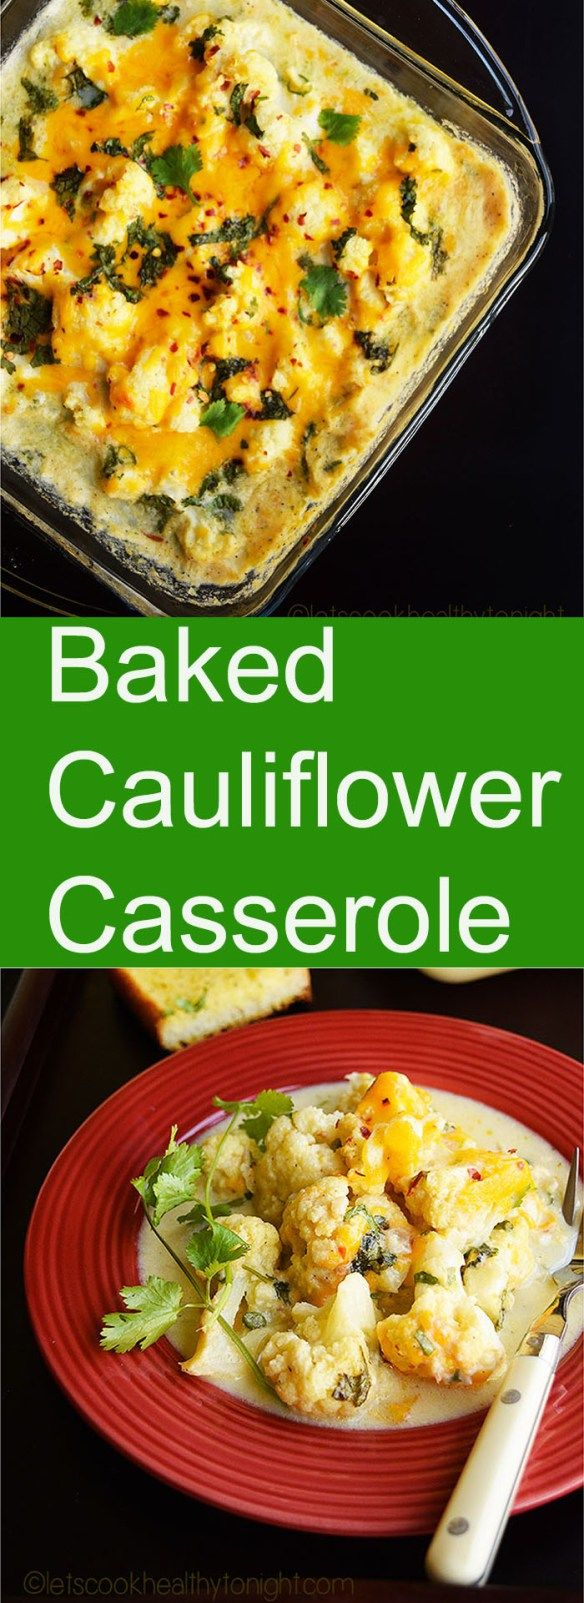 Baked Cauliflower Casserole - LET'S COOK HEALTHY TONIGHT!